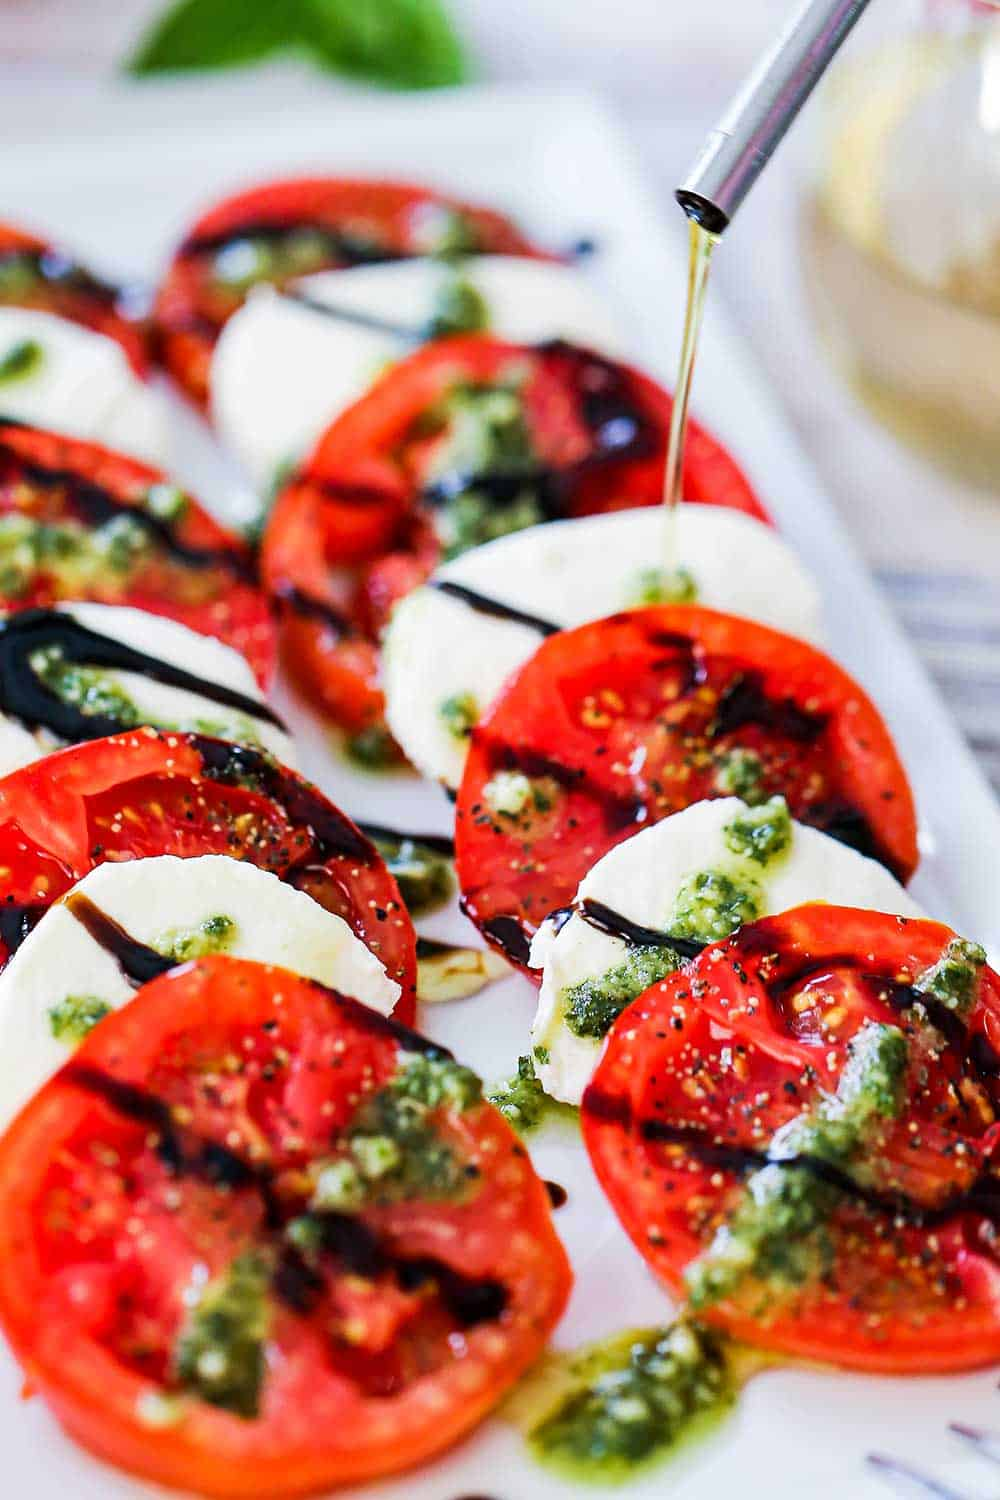 A thin drizzle of olive oil being poured from an olive oil dispenser onto a platter filled with caprese salad.